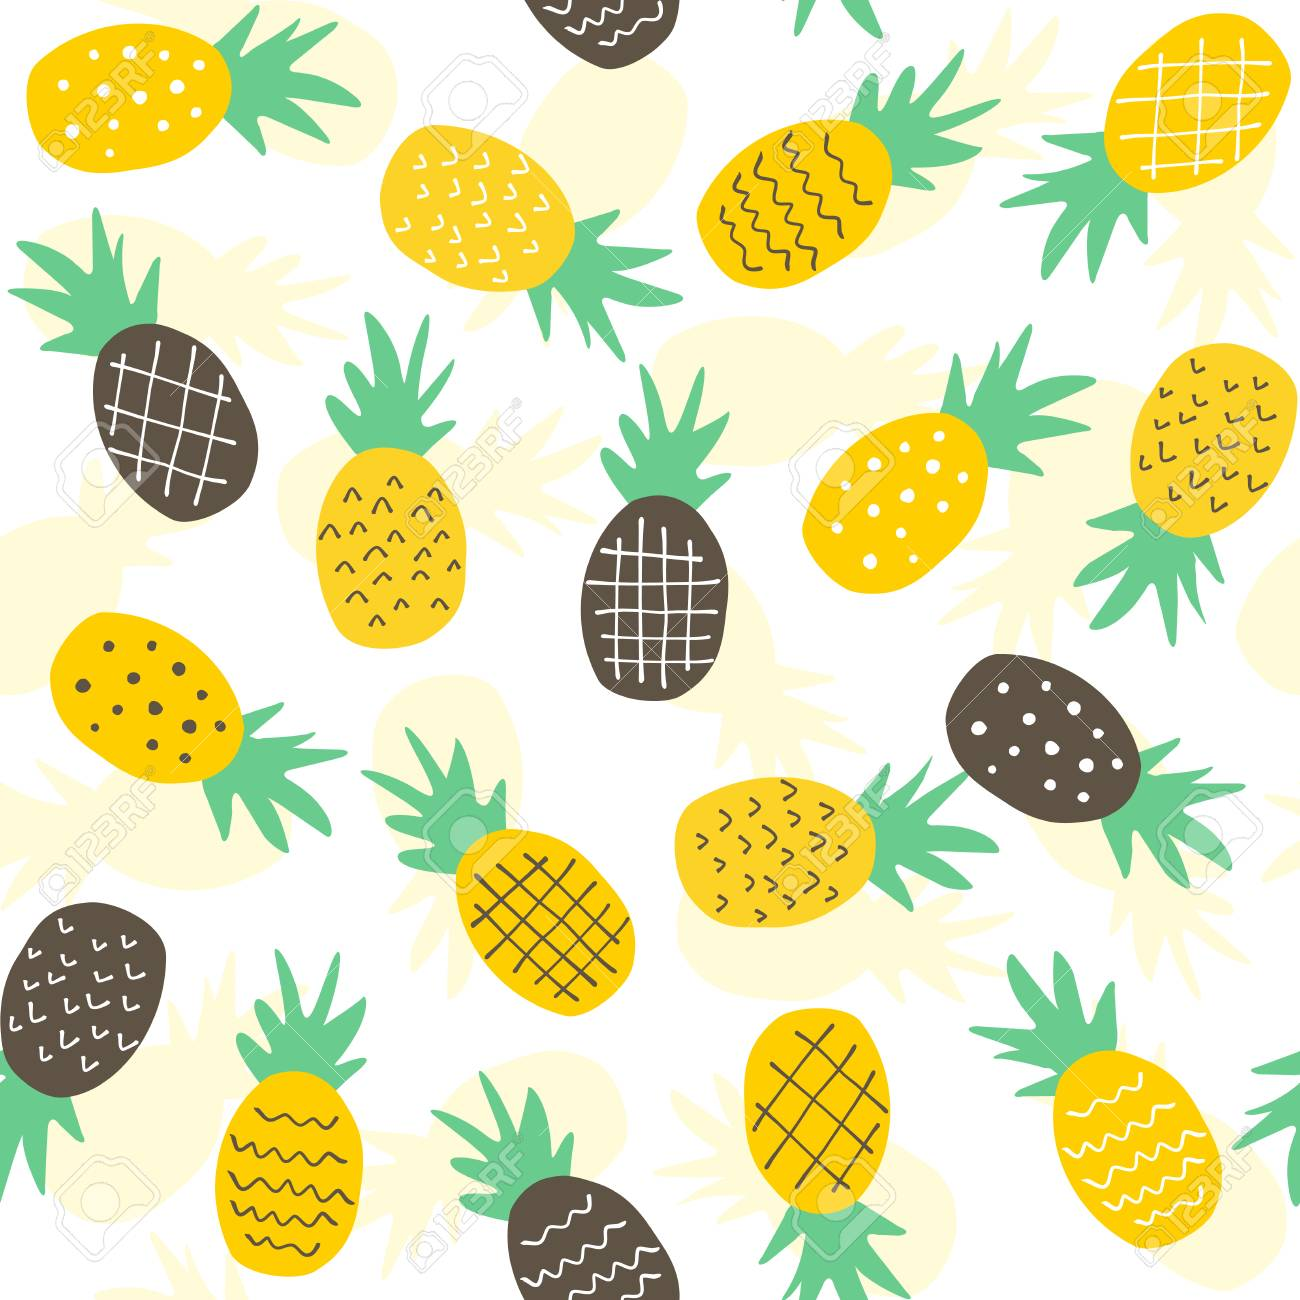 seamless pineapple pattern / cute pineapple doodle pattern for